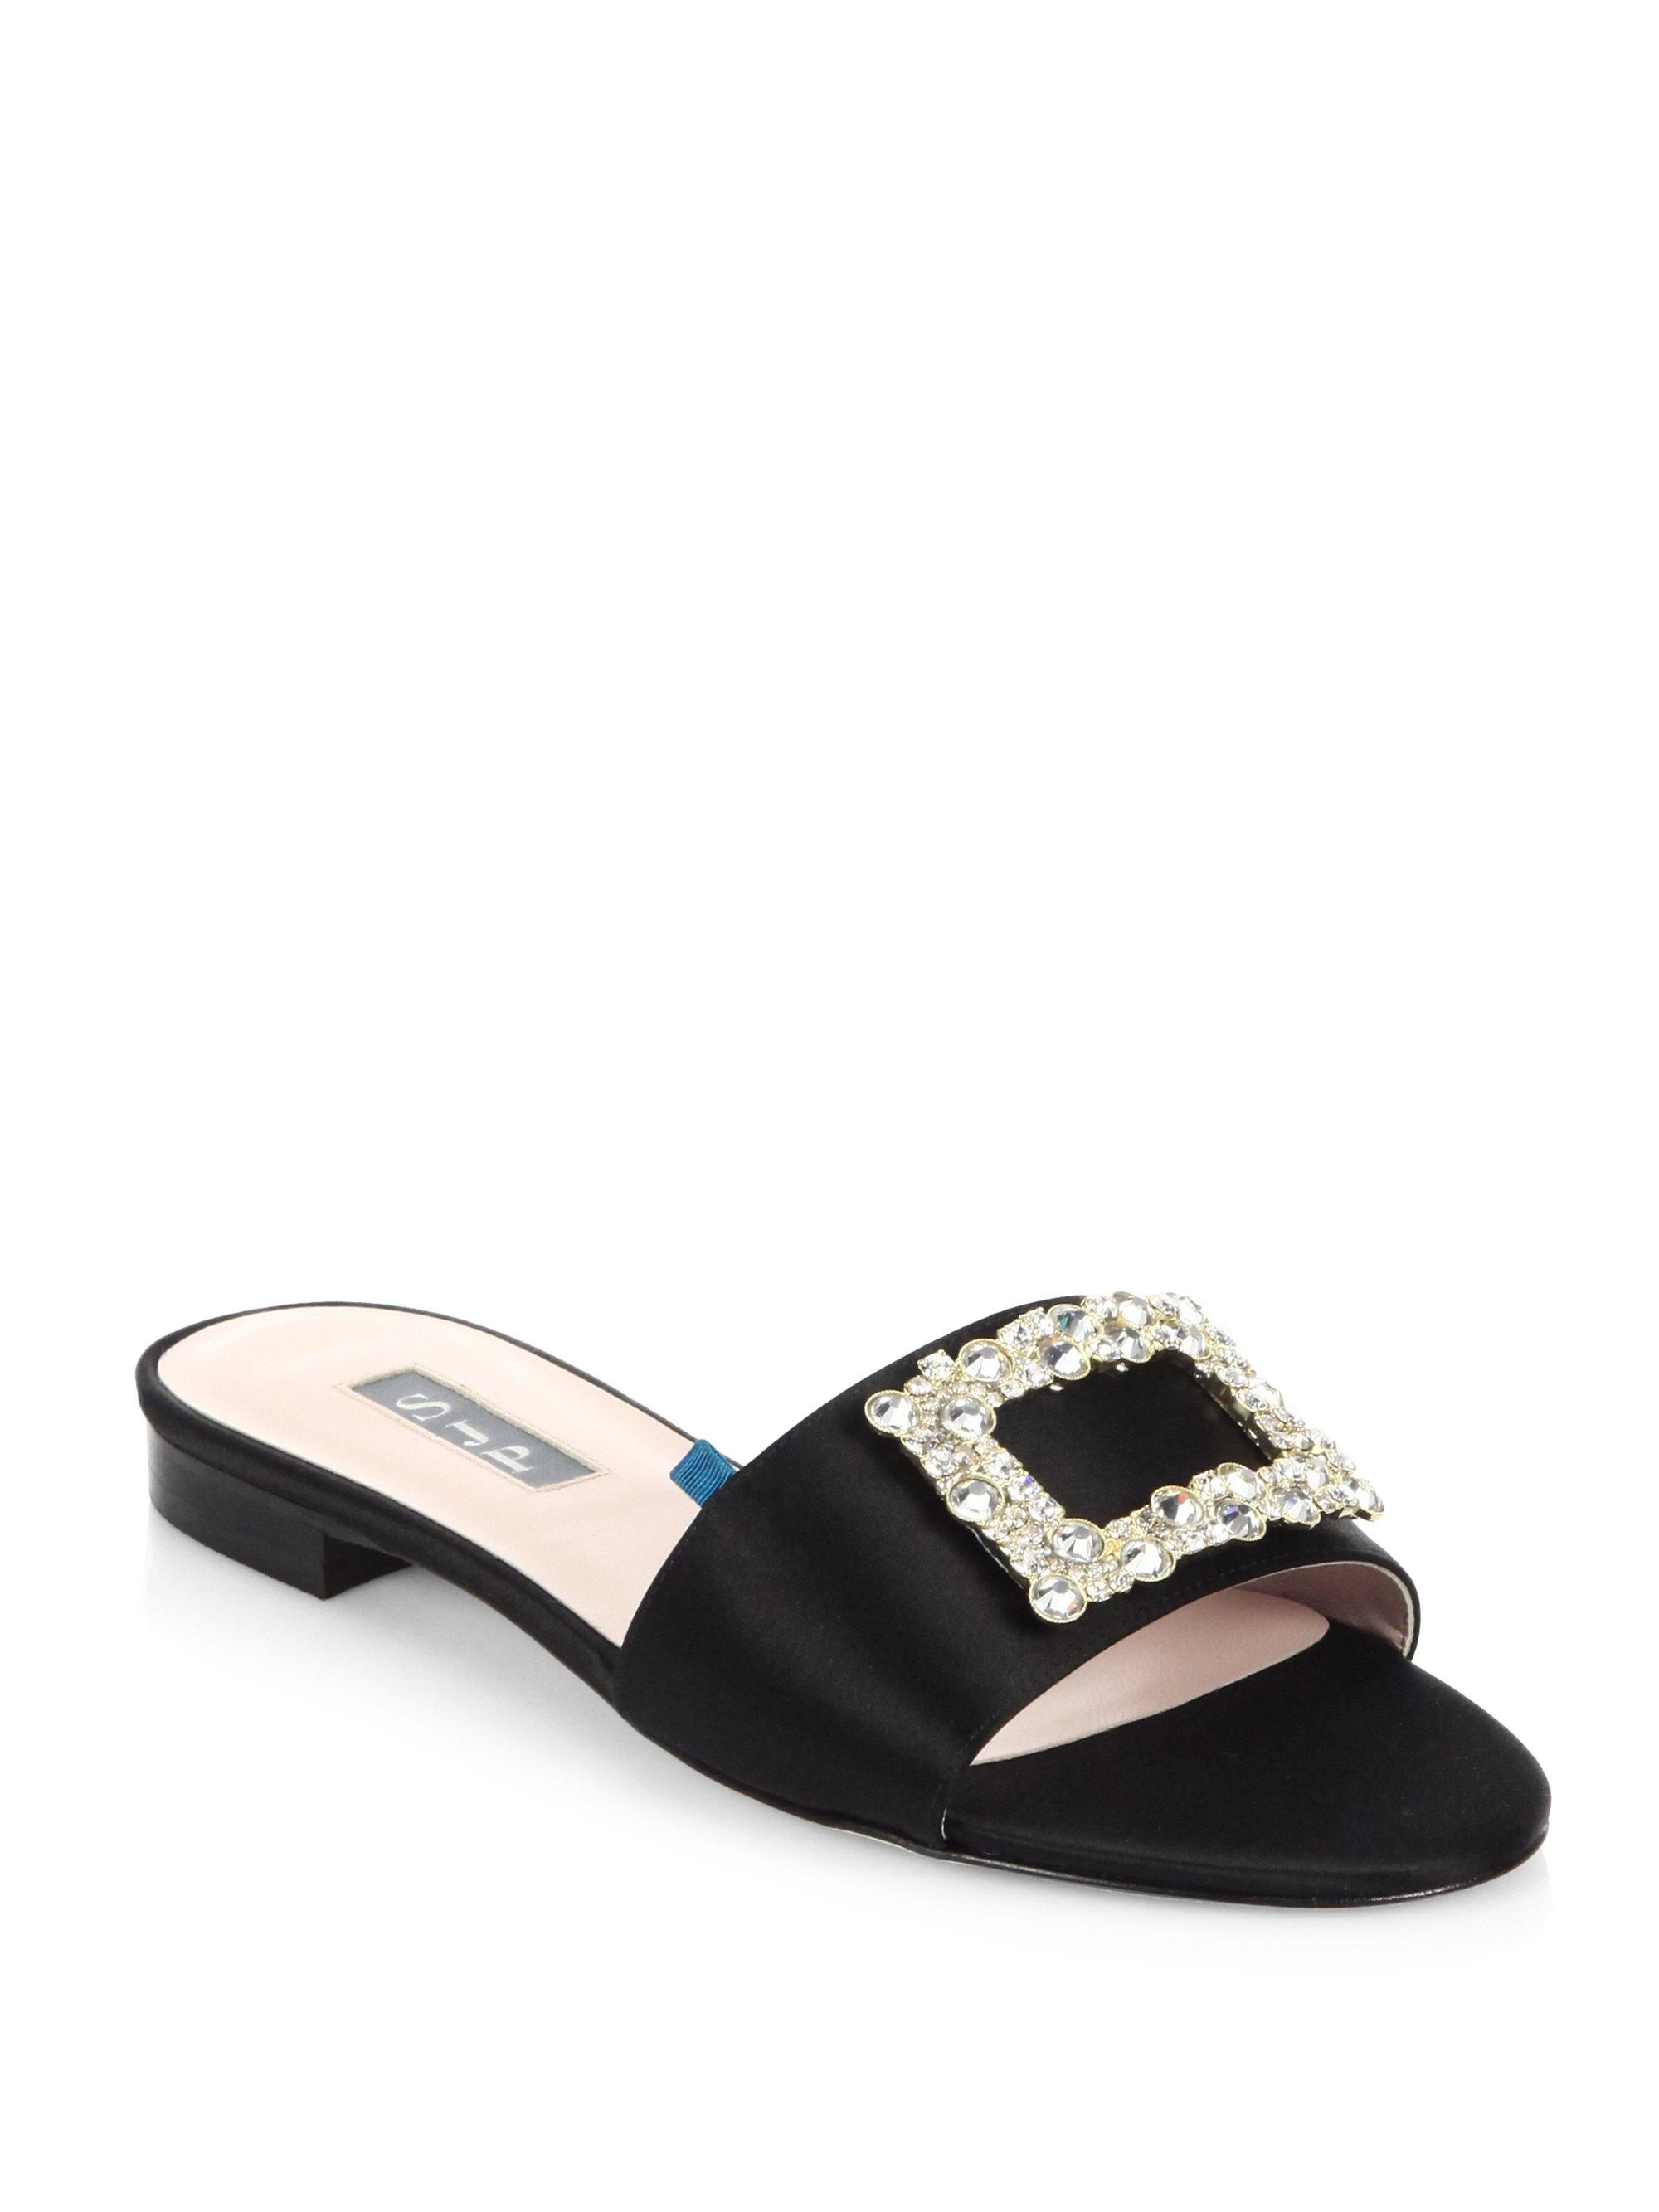 FOOTWEAR - Toe post sandals SJP by Sarah Jessica Parker 54xmQ